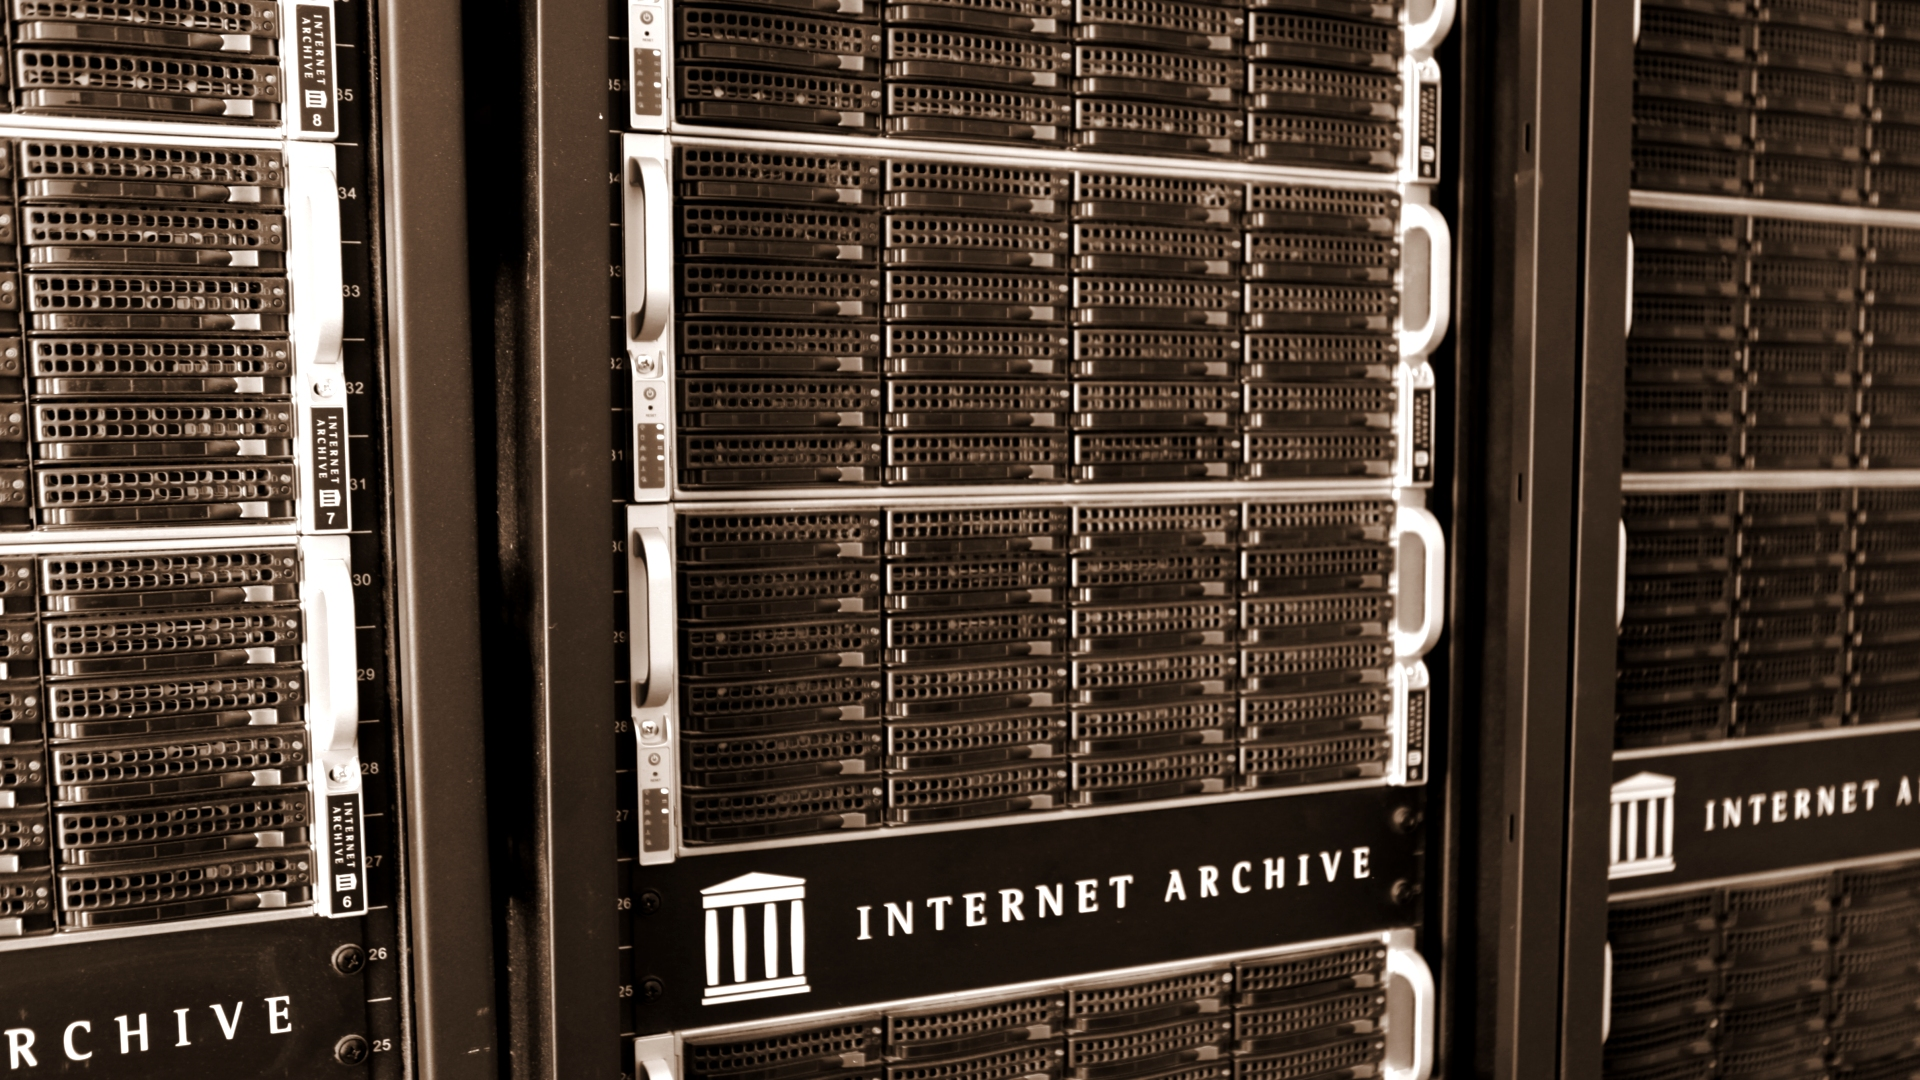 Image: Servers at the Internet Archive's data center.